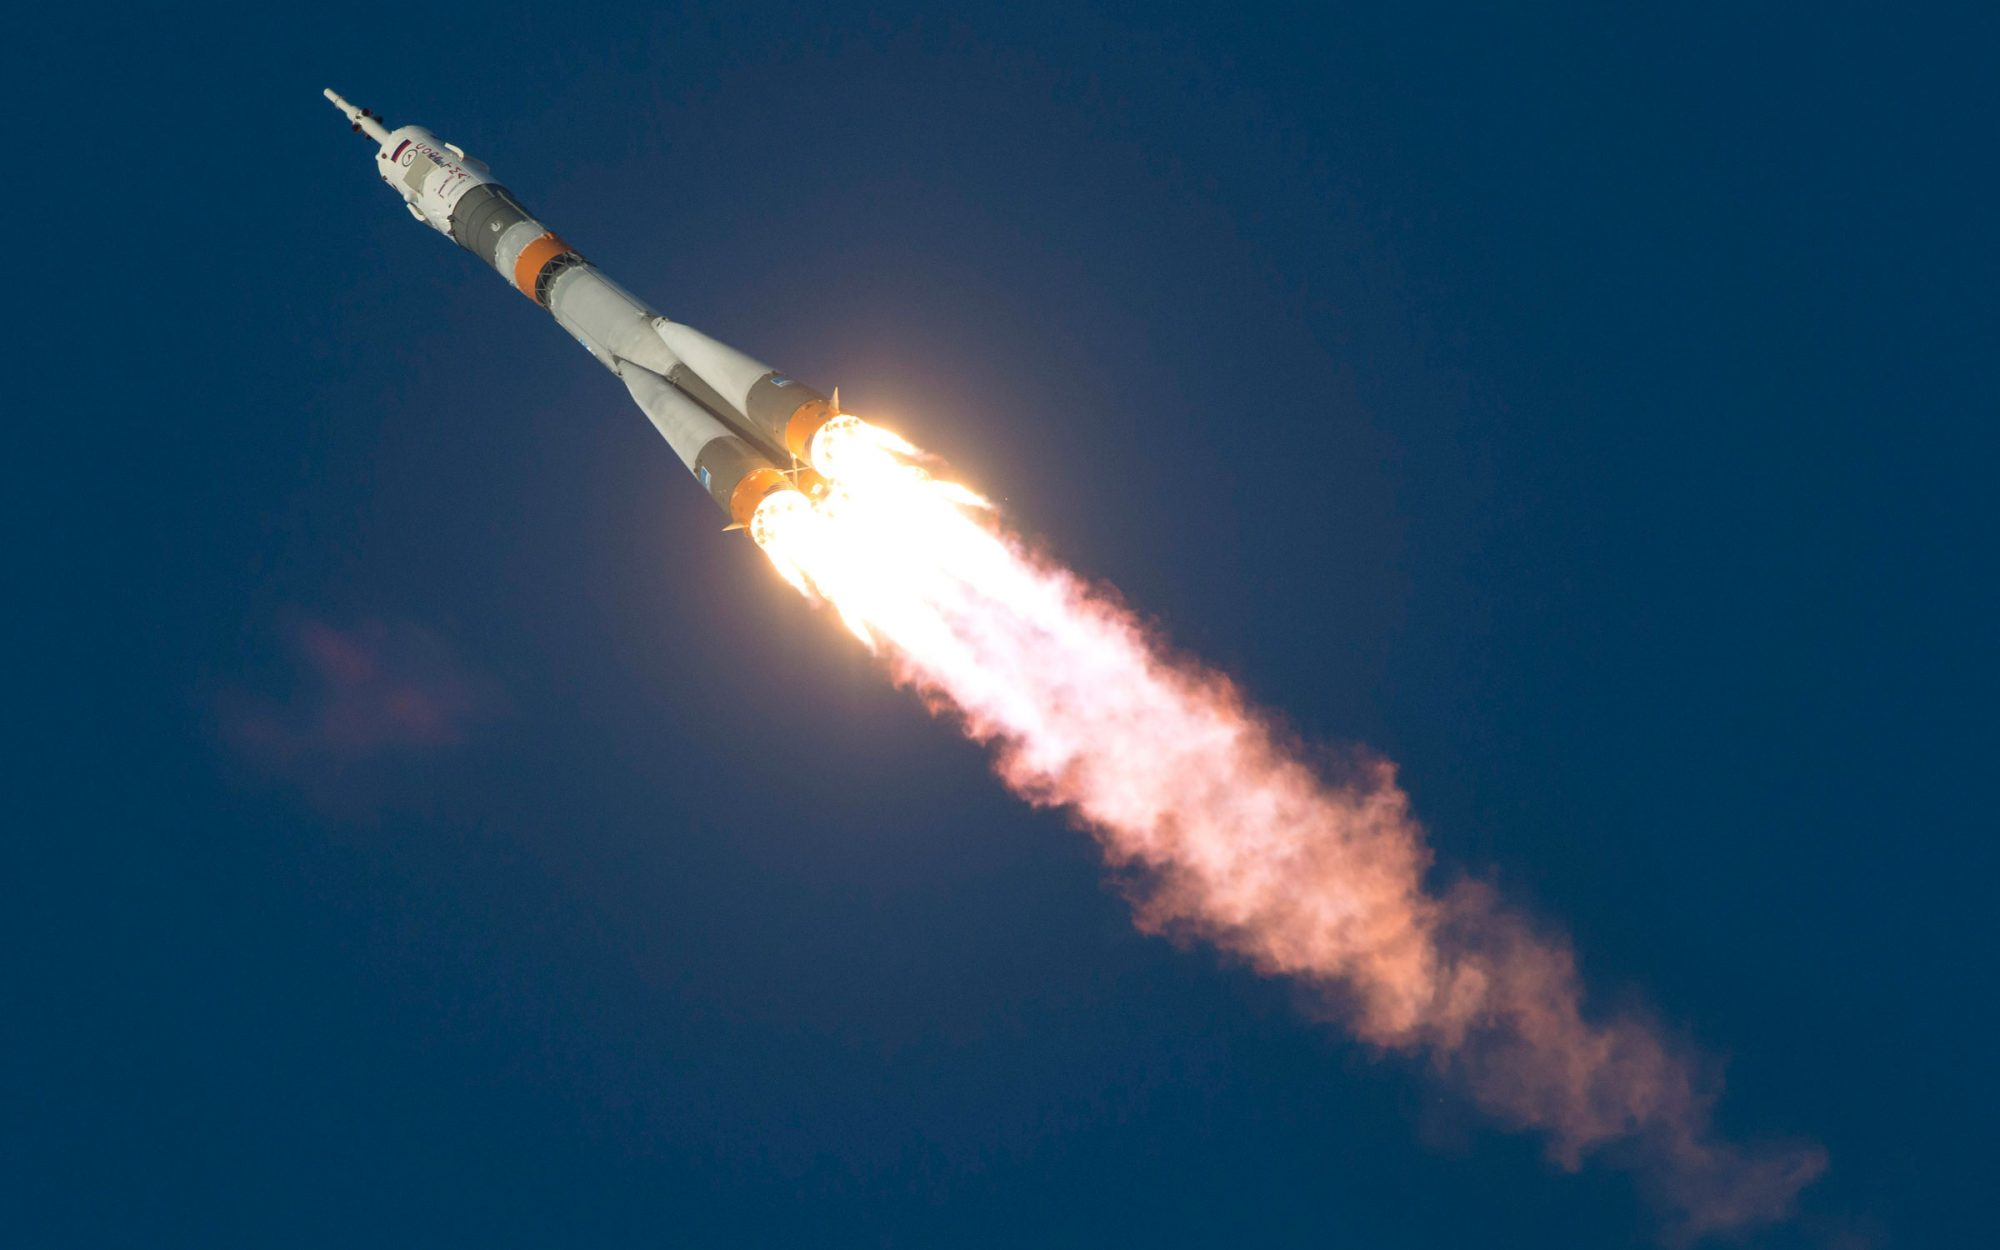 Russian space program tour includes seeing a spacecraft launch